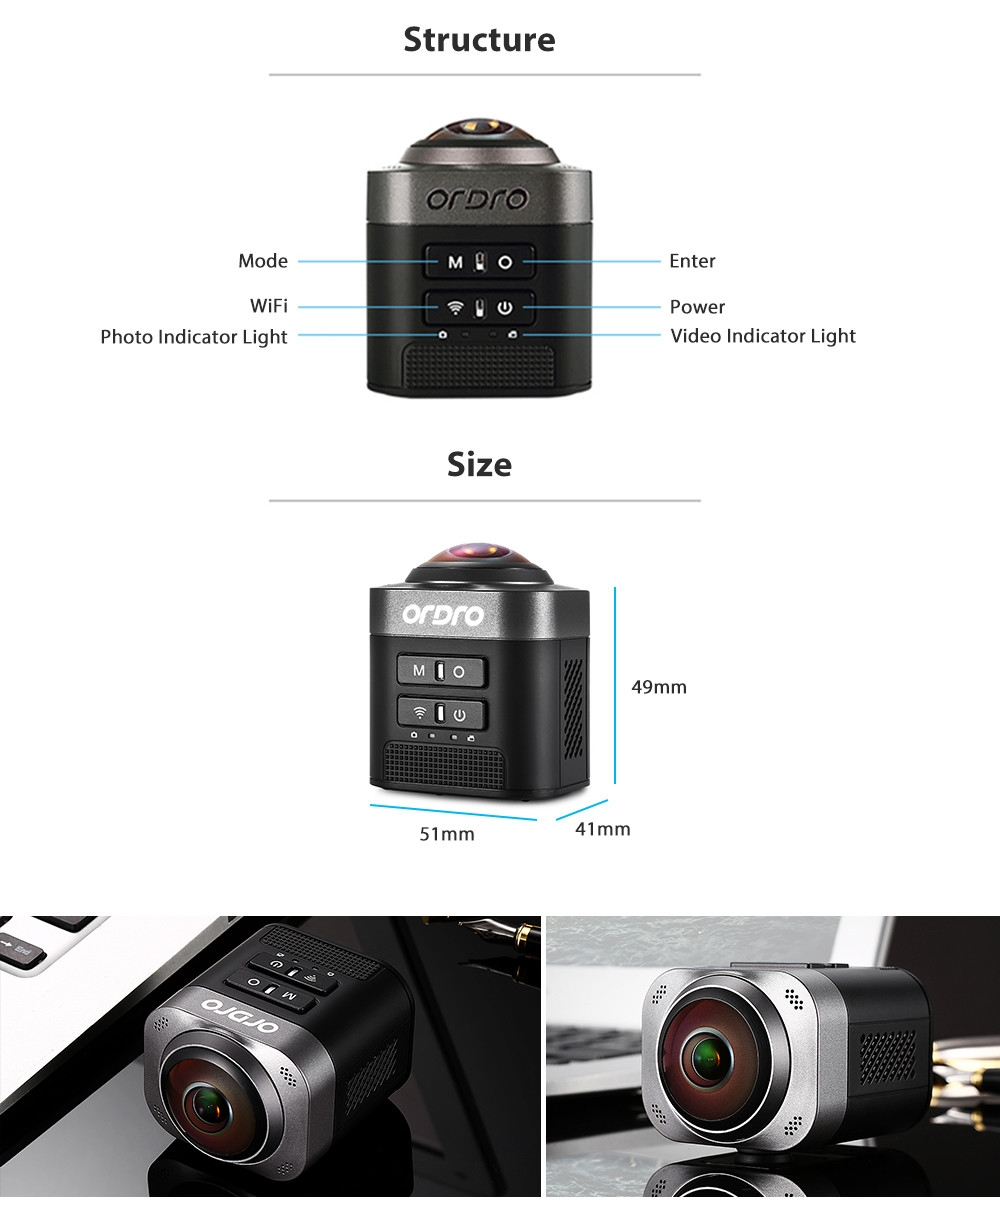 ORDRO D5 Portable 360 Degree Panorama 1080P VR Mini WiFi Panoramic Sports Action Camera for Outdoor Travel